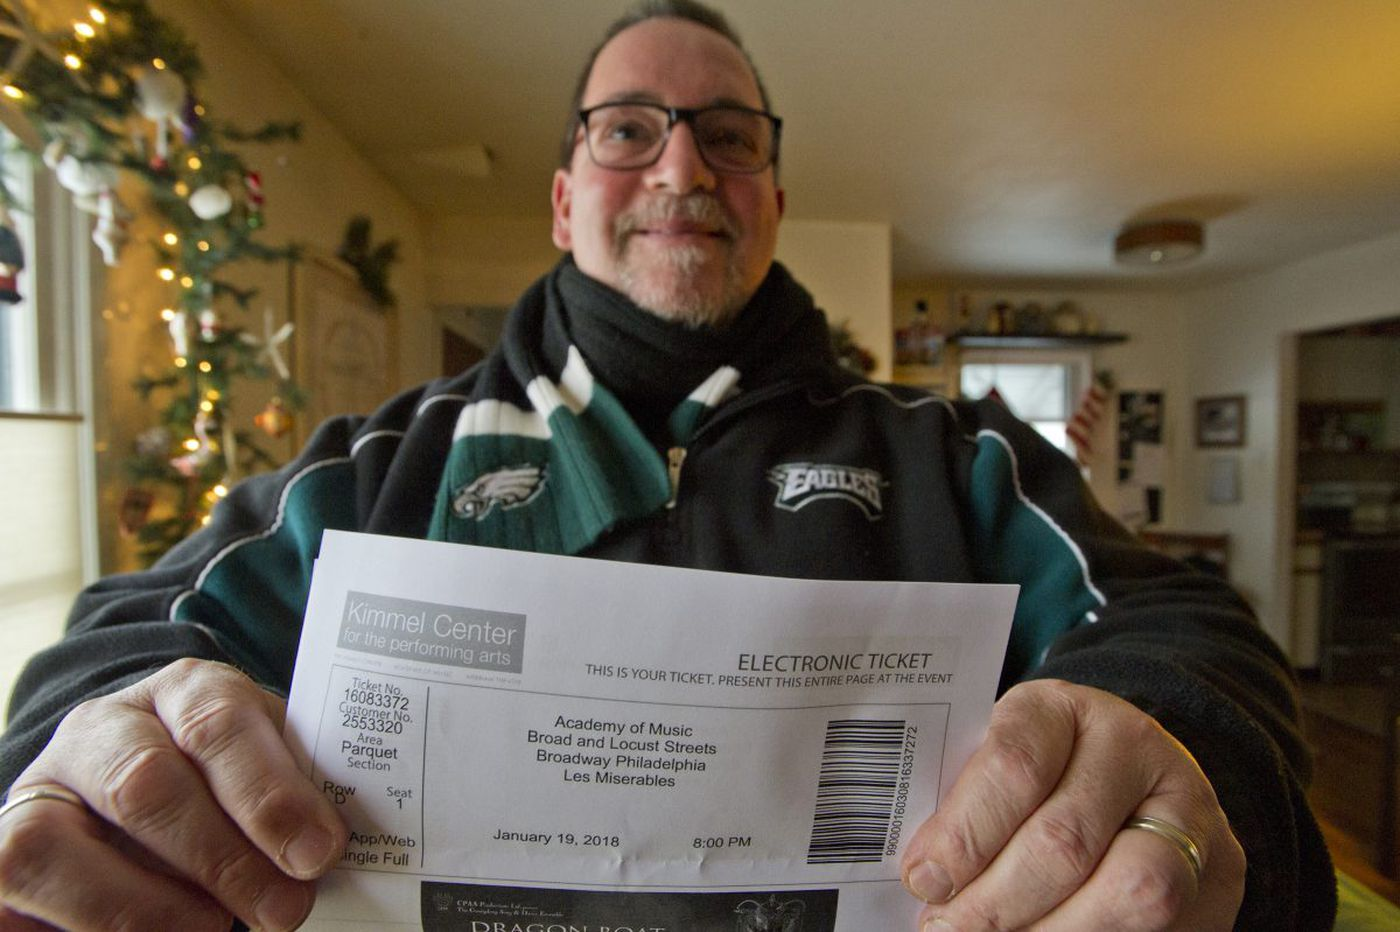 Les Mis Eagles fan makes it to the big game, after all